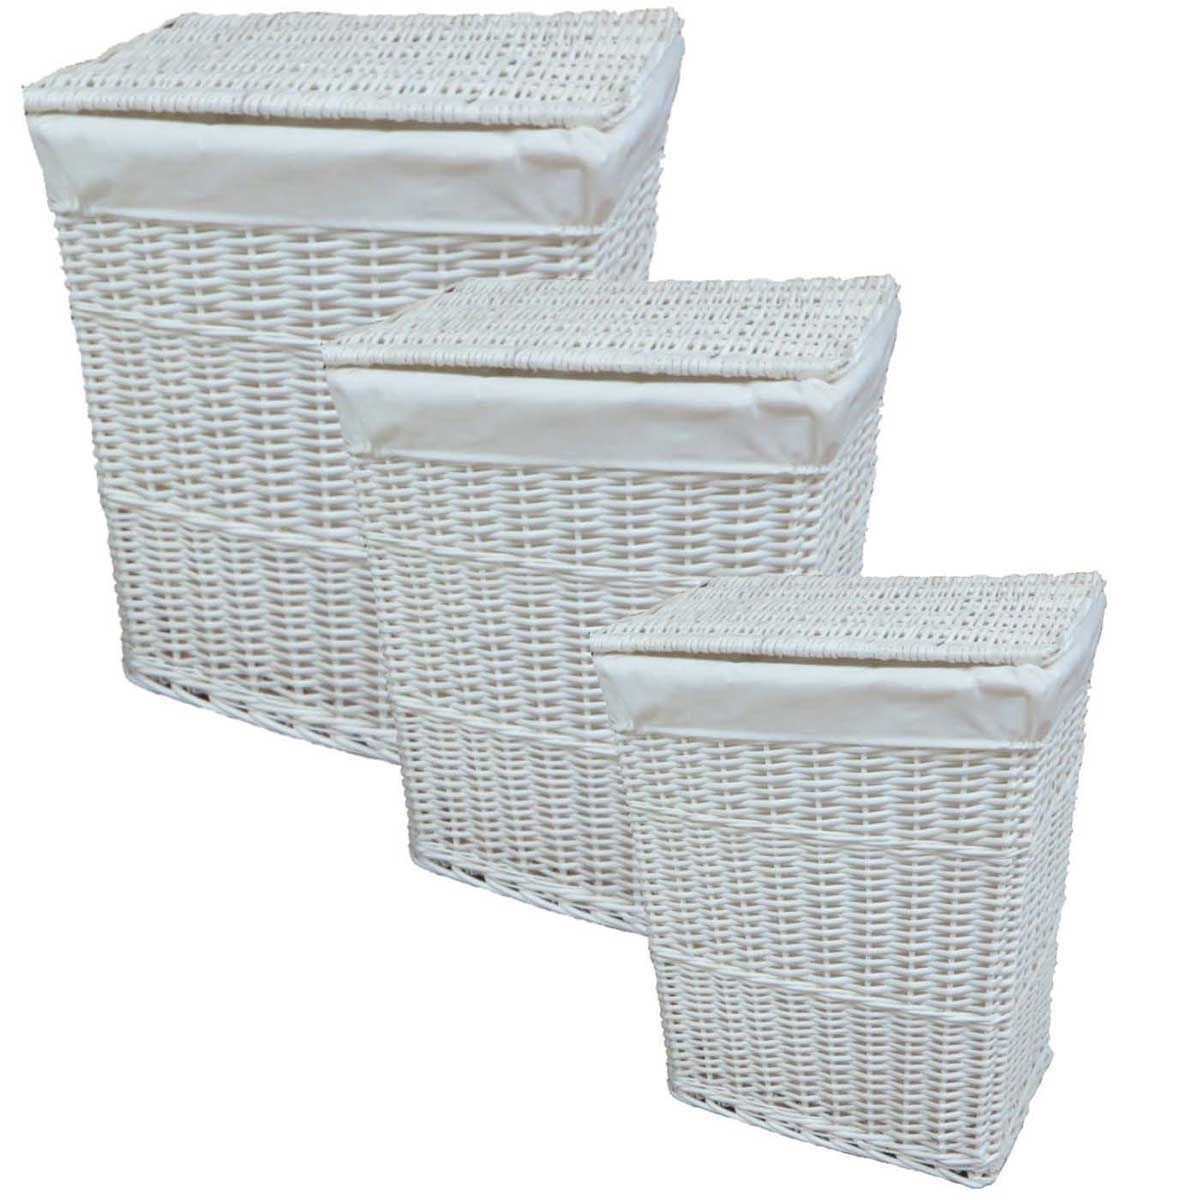 White Hamper With Liner Lidded White Wicker Willow Linen Laundry Bin Storage